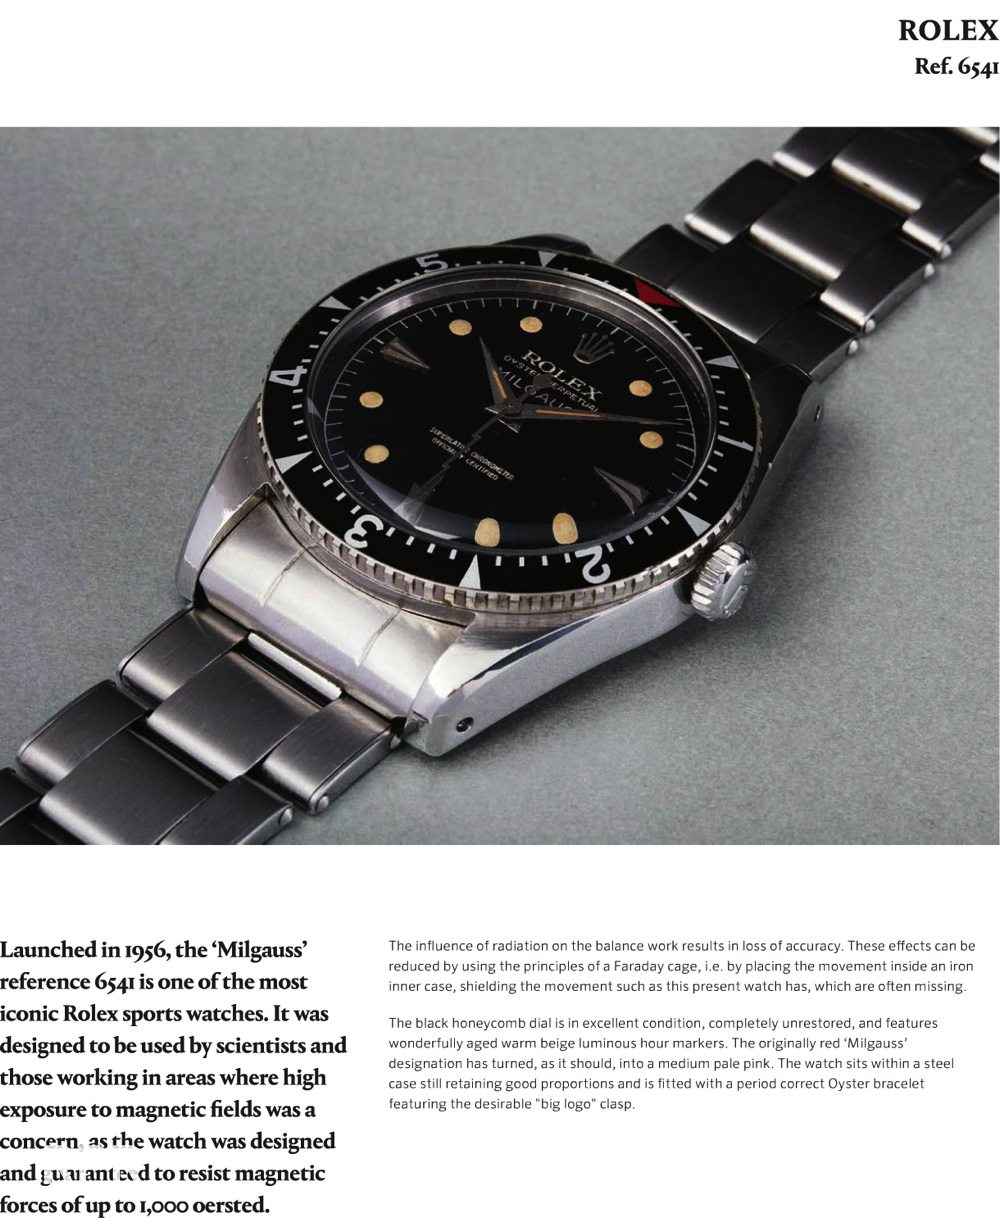 RPR_Rolex_geneva_auction_2015_54